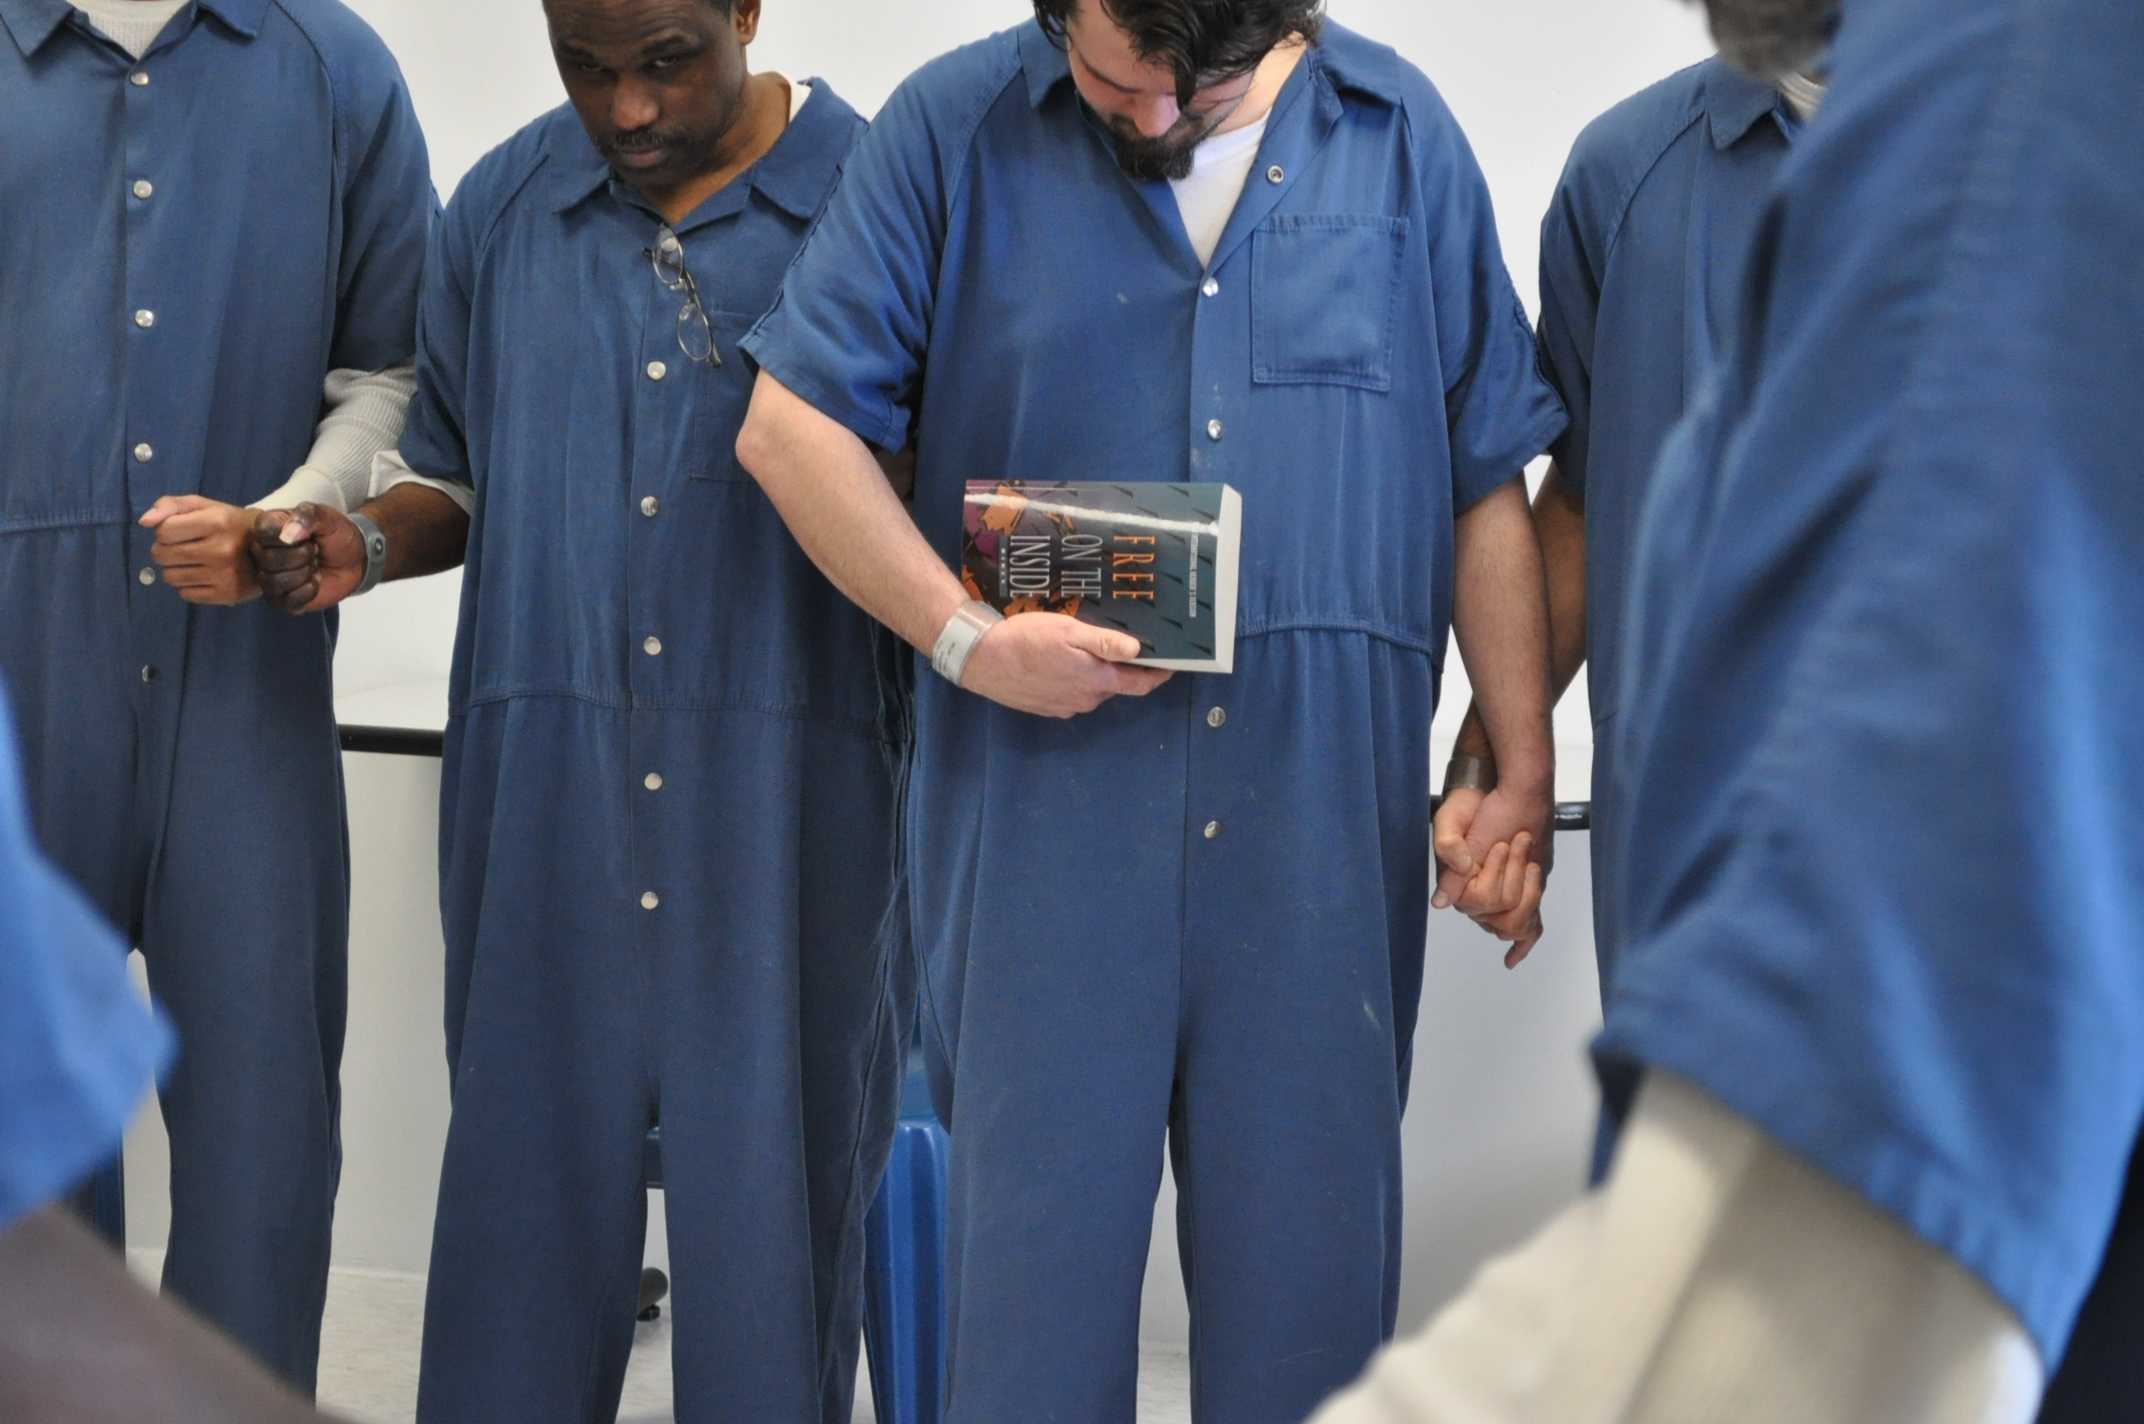 Spiritual freedom through prison ministry